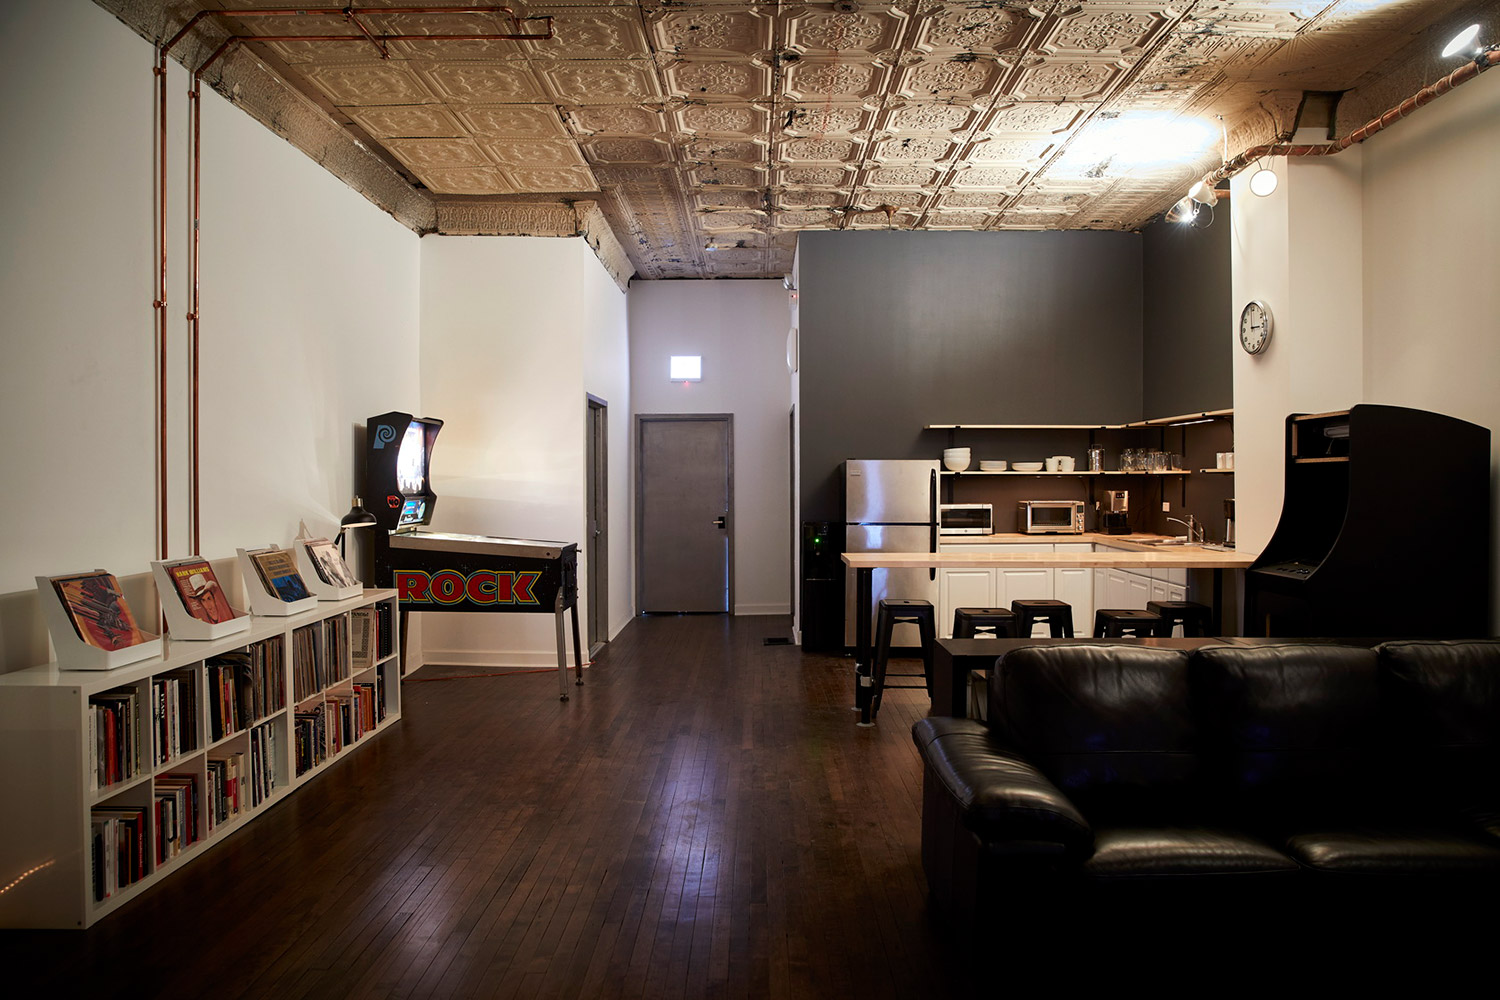 Top mastering engineer and Boiler Room founder Collin Jordan inquired WSDG to fully design his new mastering room in Chicago. WSDG's balance of technical acoustics and artistic design was spot on and made it easy to make the decision. Lounge/Kitchen.